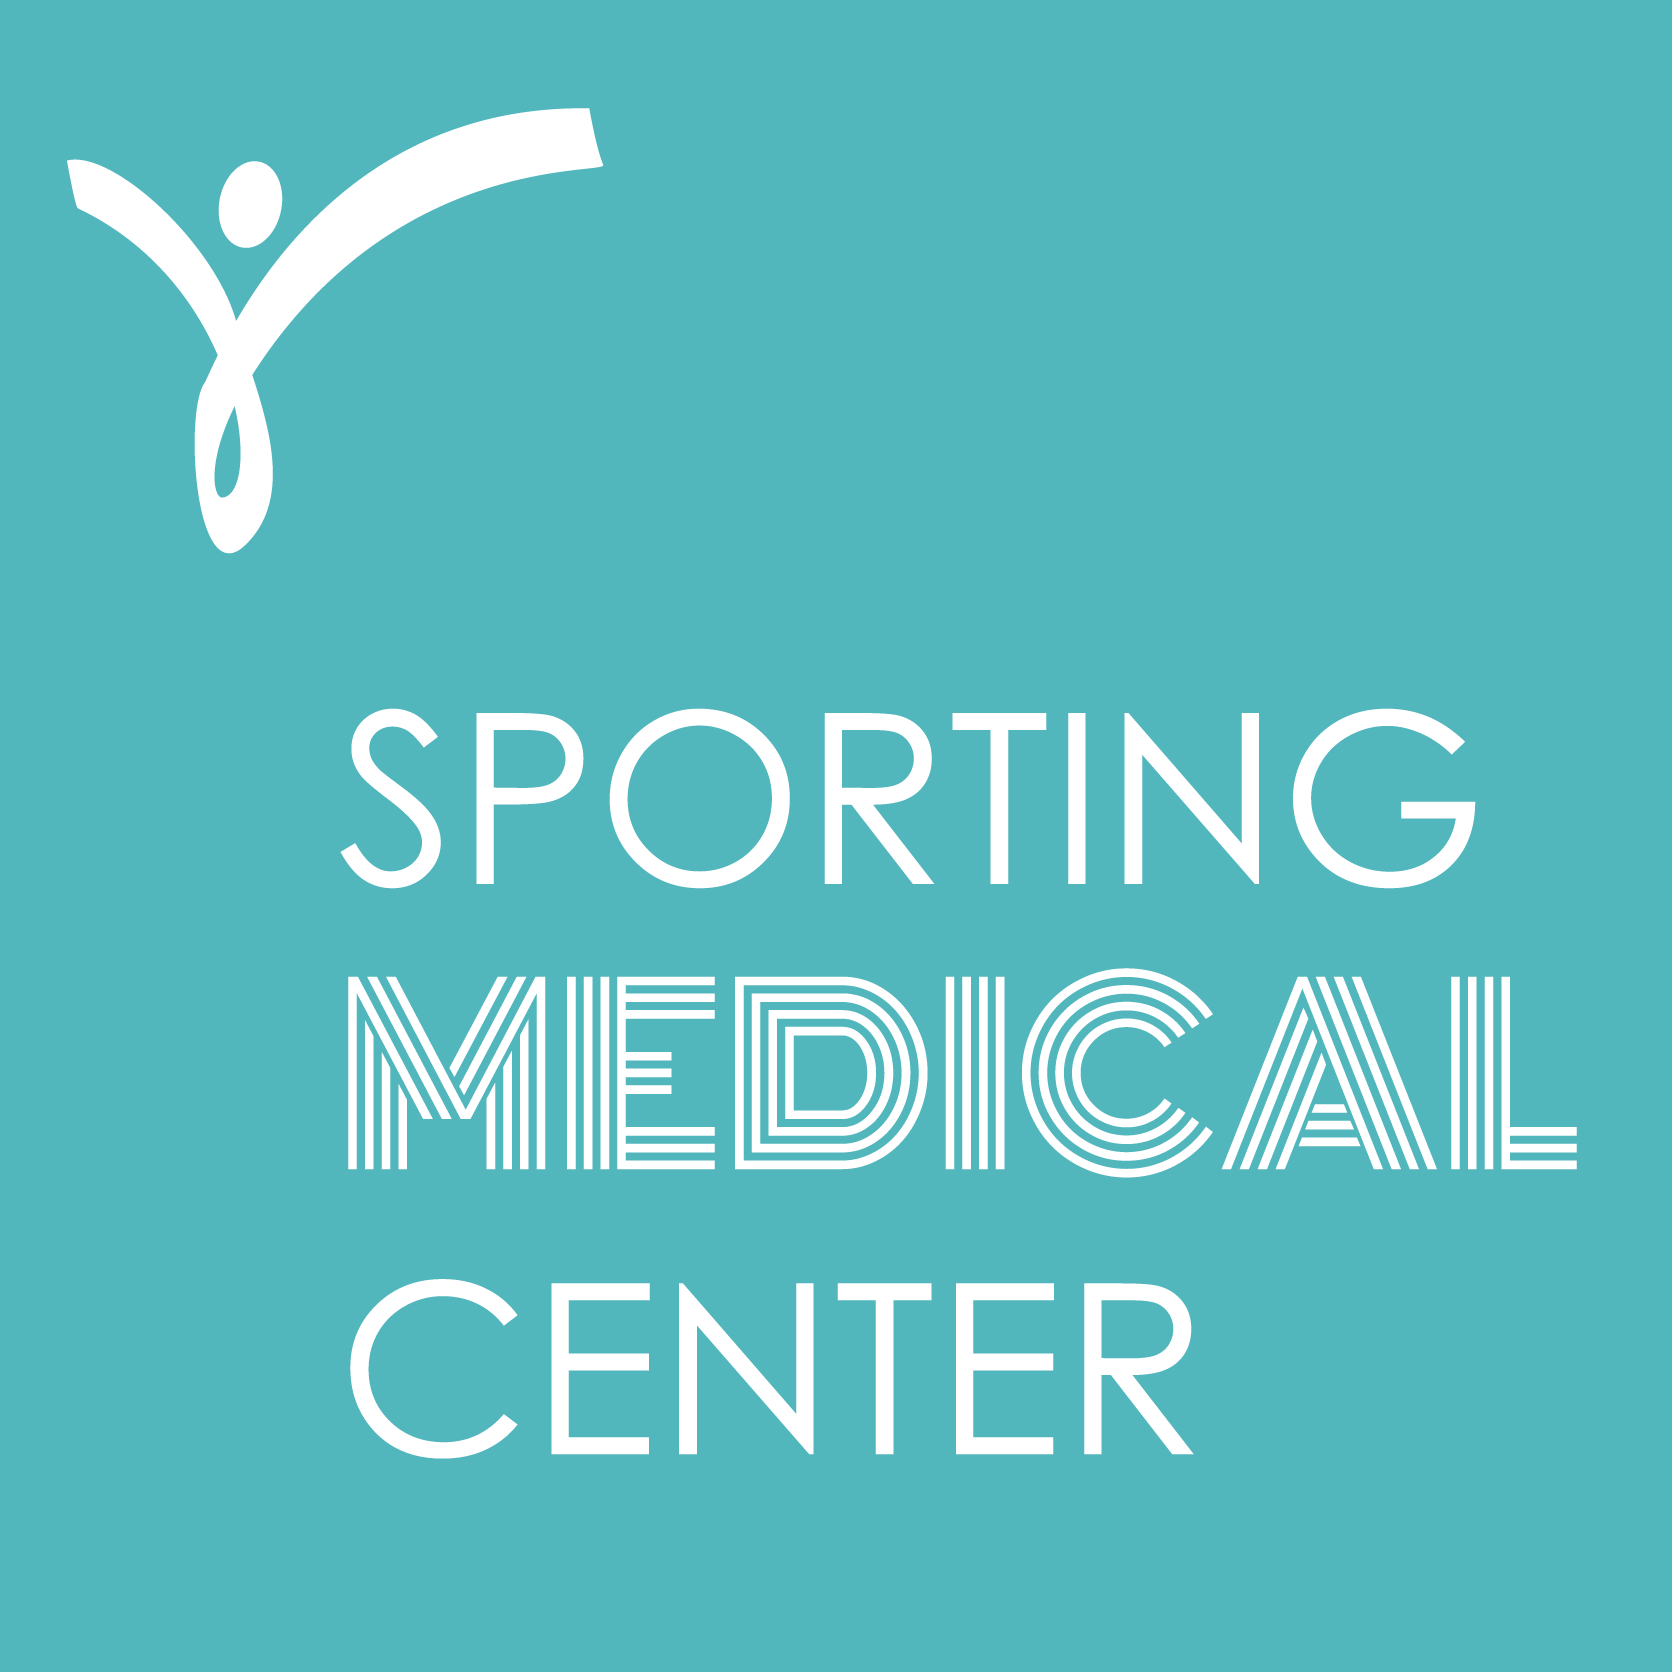 Sporting Medical Center